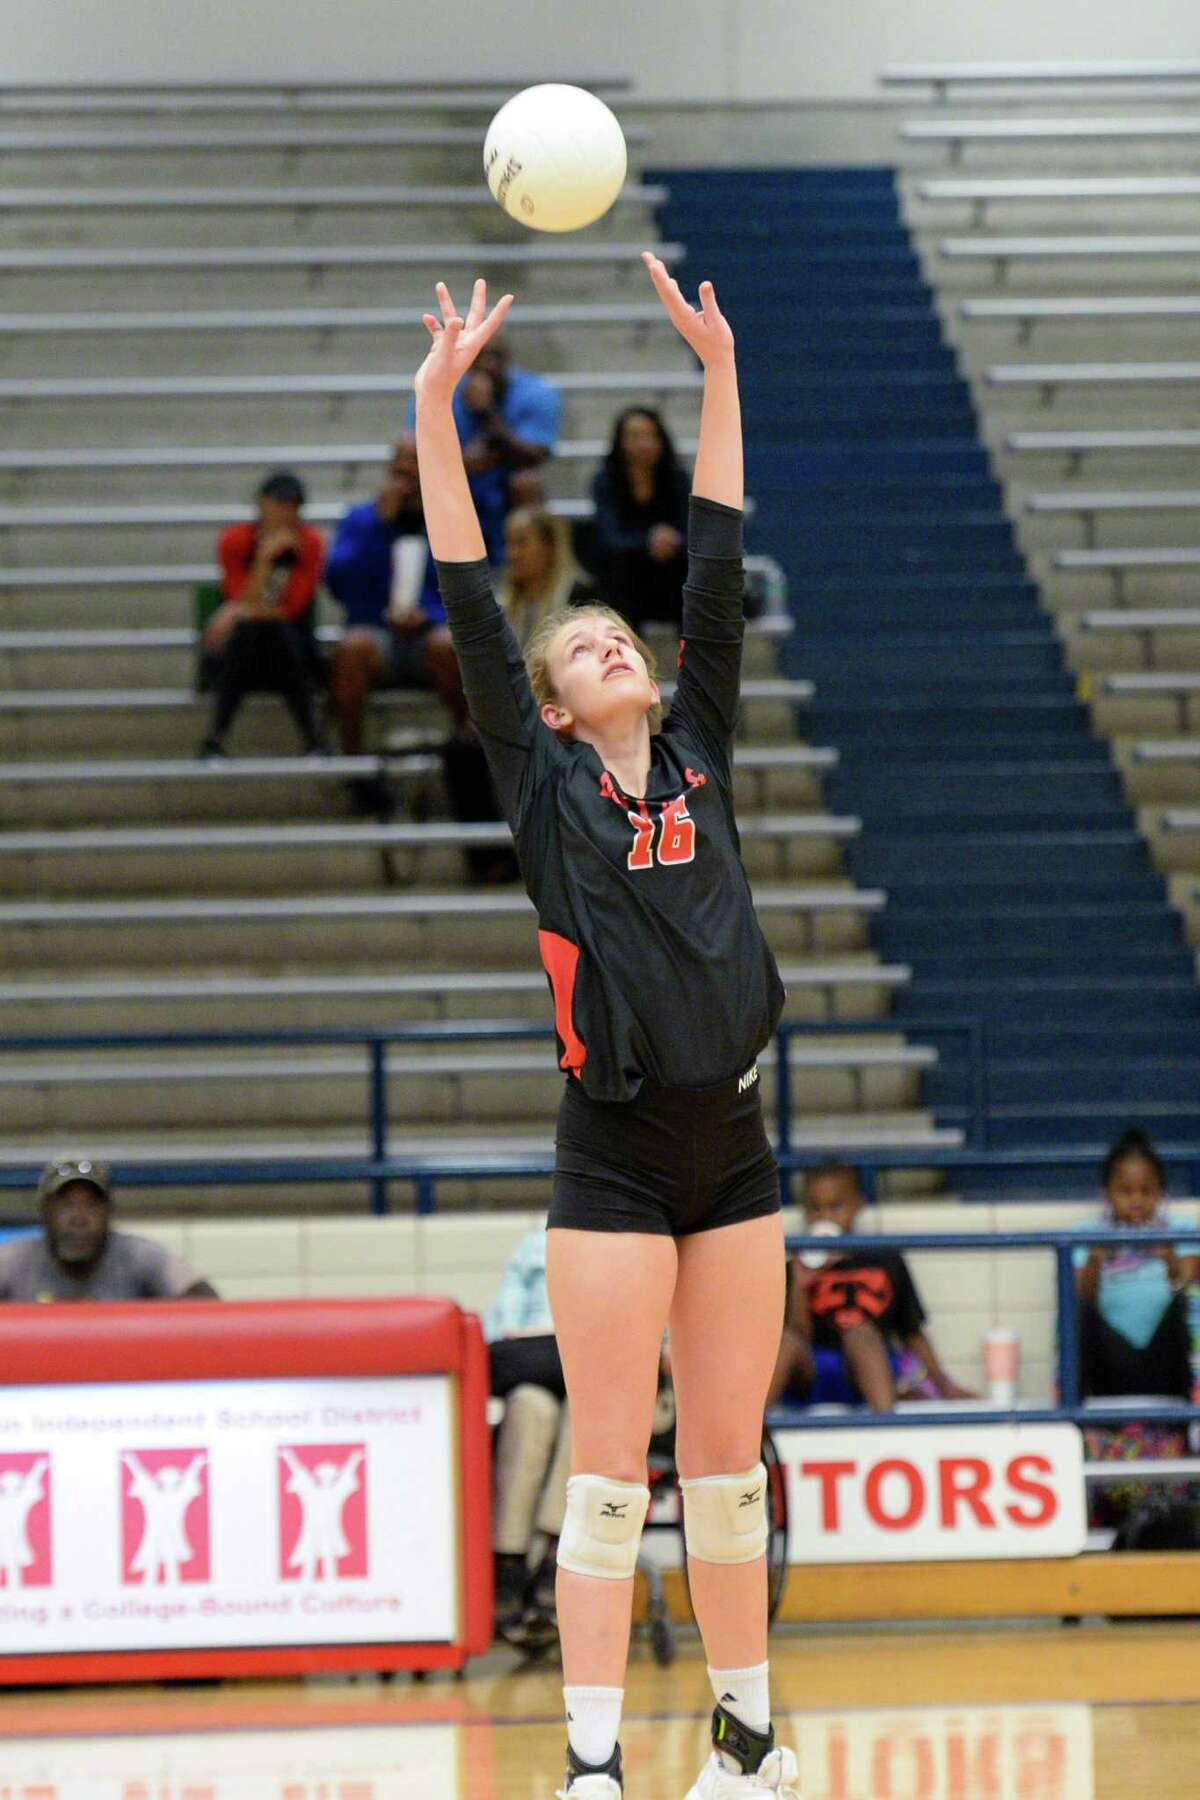 Piper Stephenson (16) of Bellaire sets a ball during the second set of a high school volleyball match between the Bellaire Cardinals and the Chavez Lobos on Tuesday, September 24, 2019 at Butler Fieldhouse, Houston, TX.